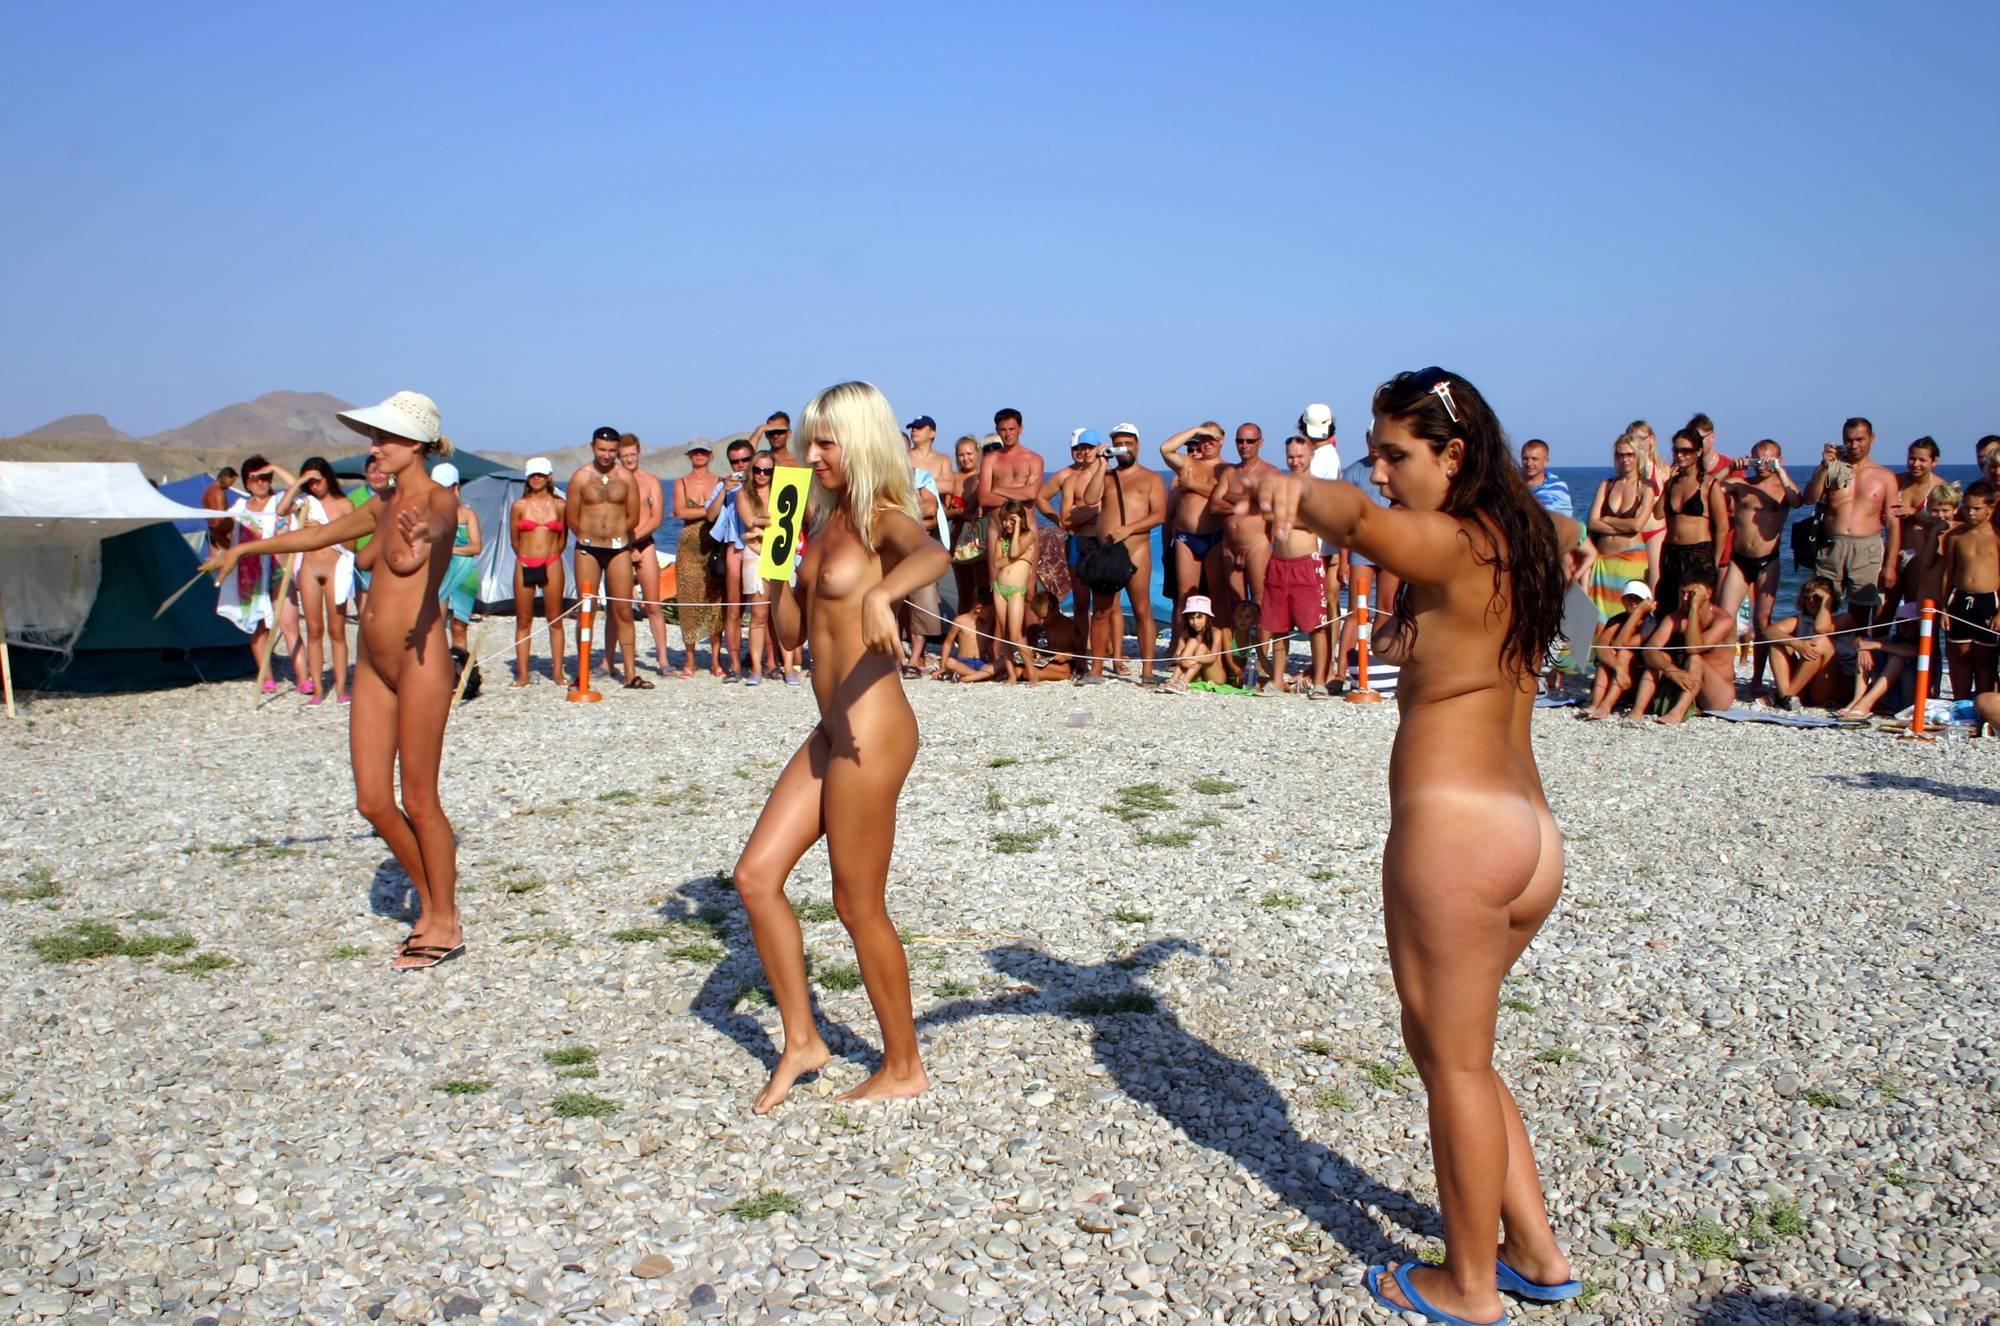 Nudist Photos Beach Rope Pull Fighting - 1